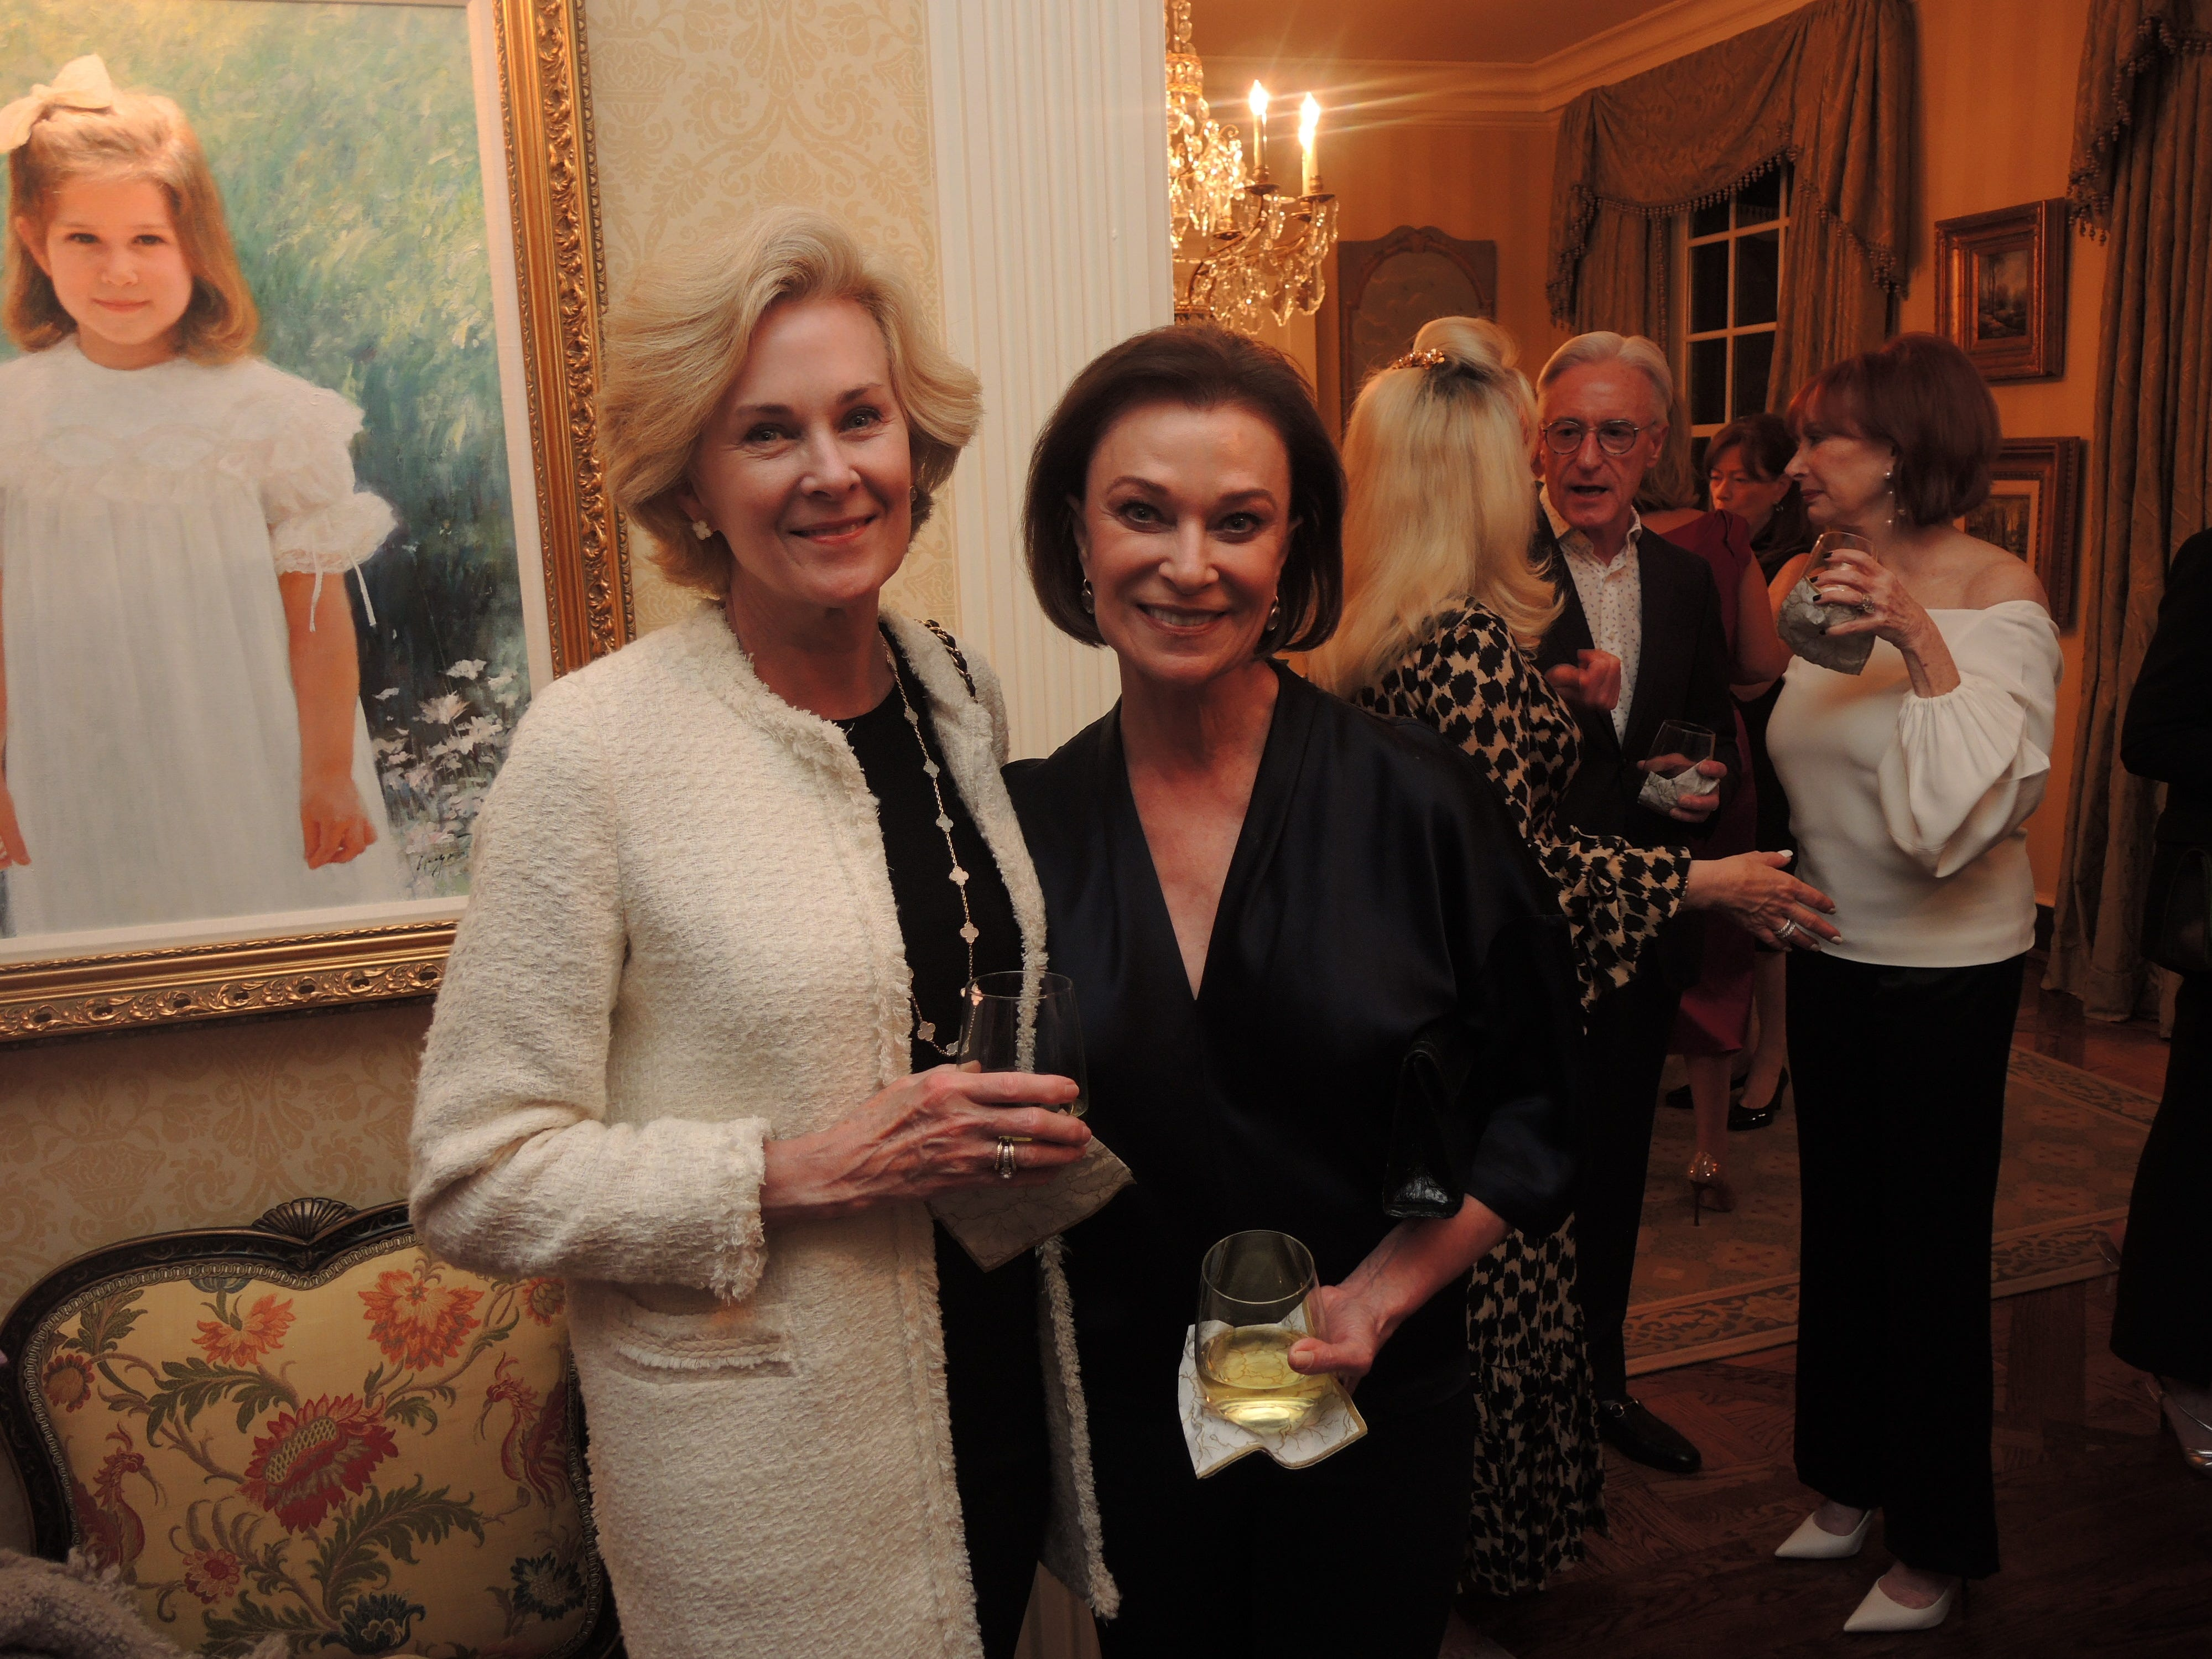 Jenny McCabe, left, and Peggy Kinnard at the Swan Ball 2019 Unveiling, held at the home of Kathy and Bobby Rolfe.